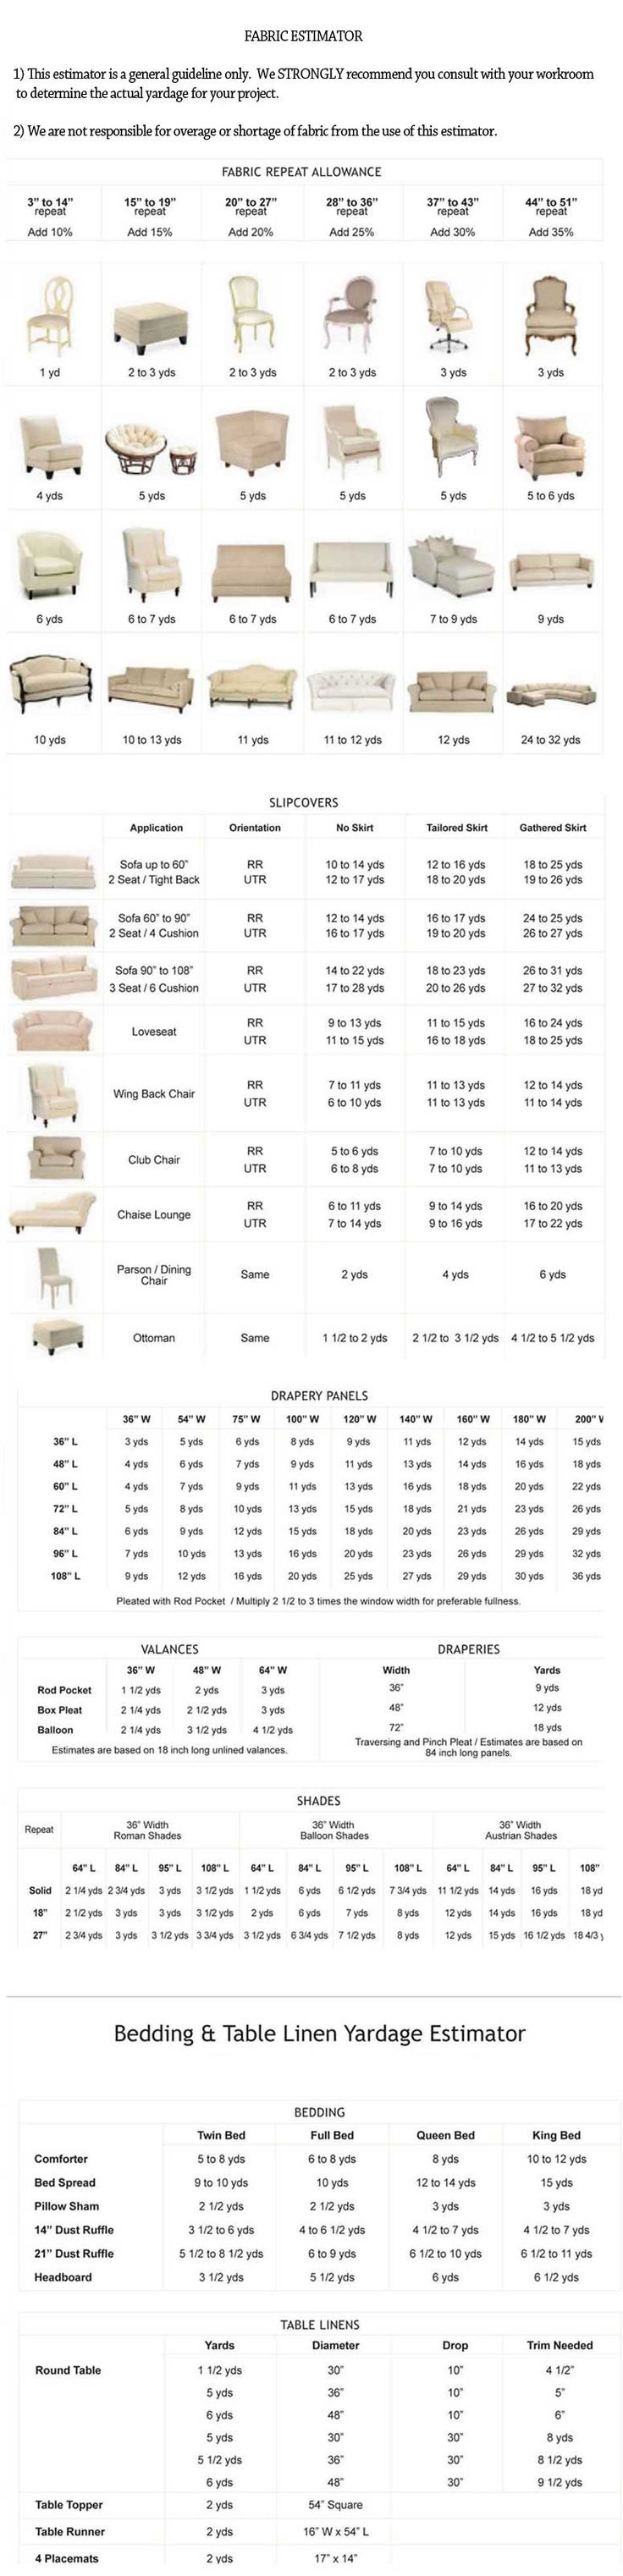 | P | Drapery, Upholstery, Bedding & Table Linen Fabric Estimator. I will need to see if these calculations are correct.